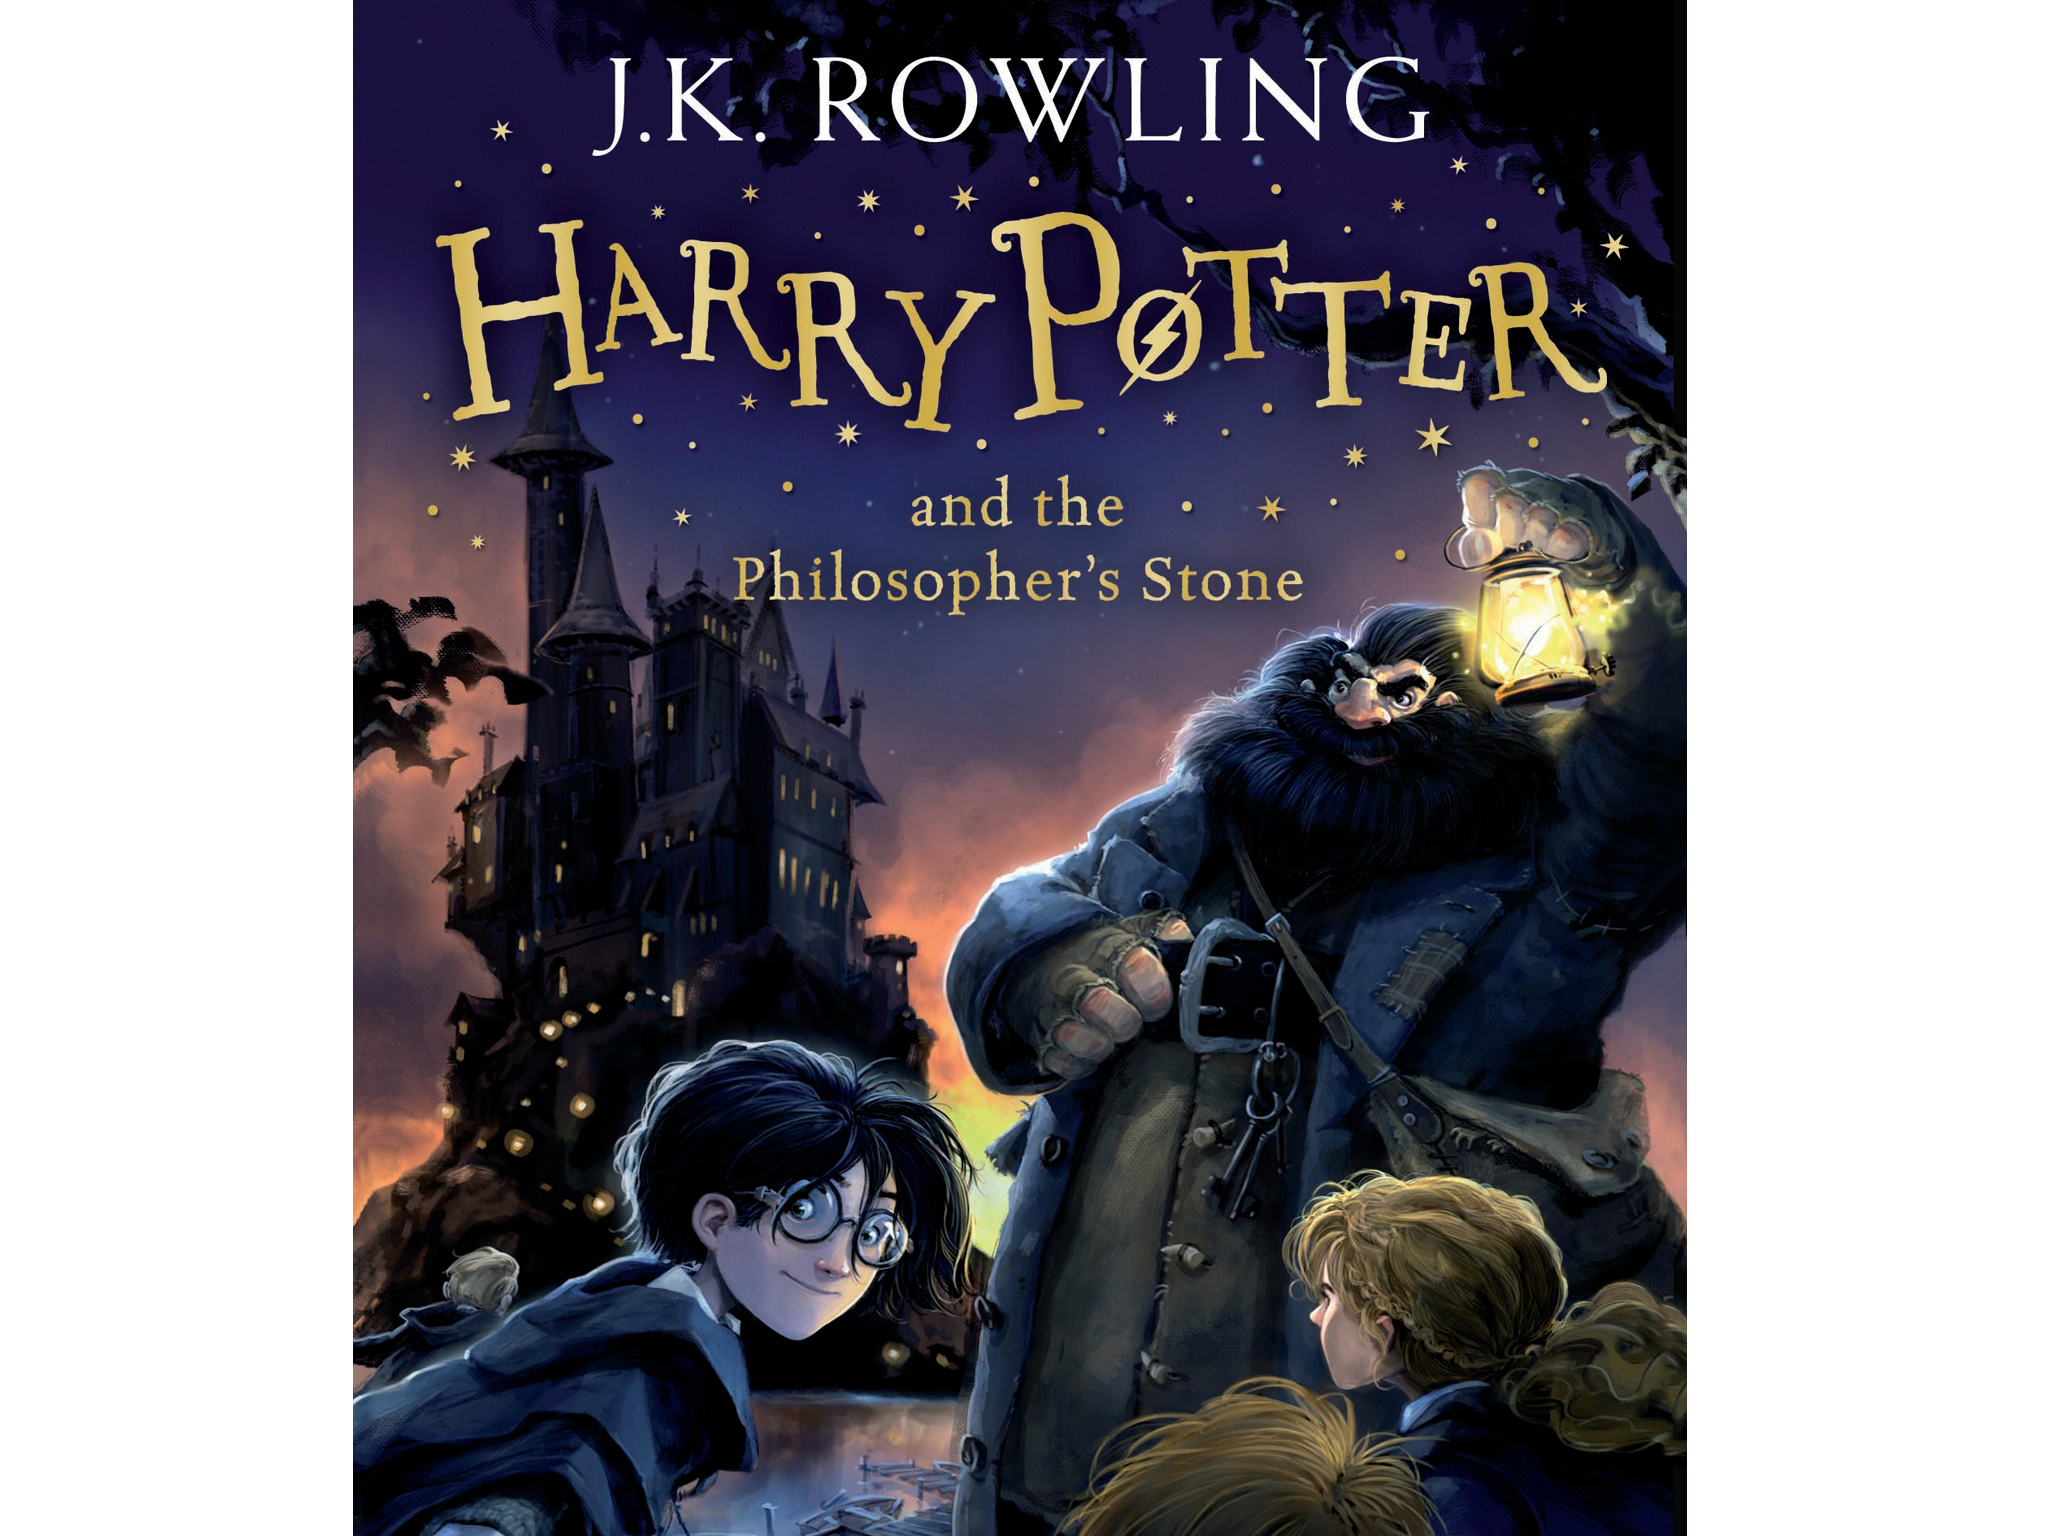 100 best children's books: Harry Potter